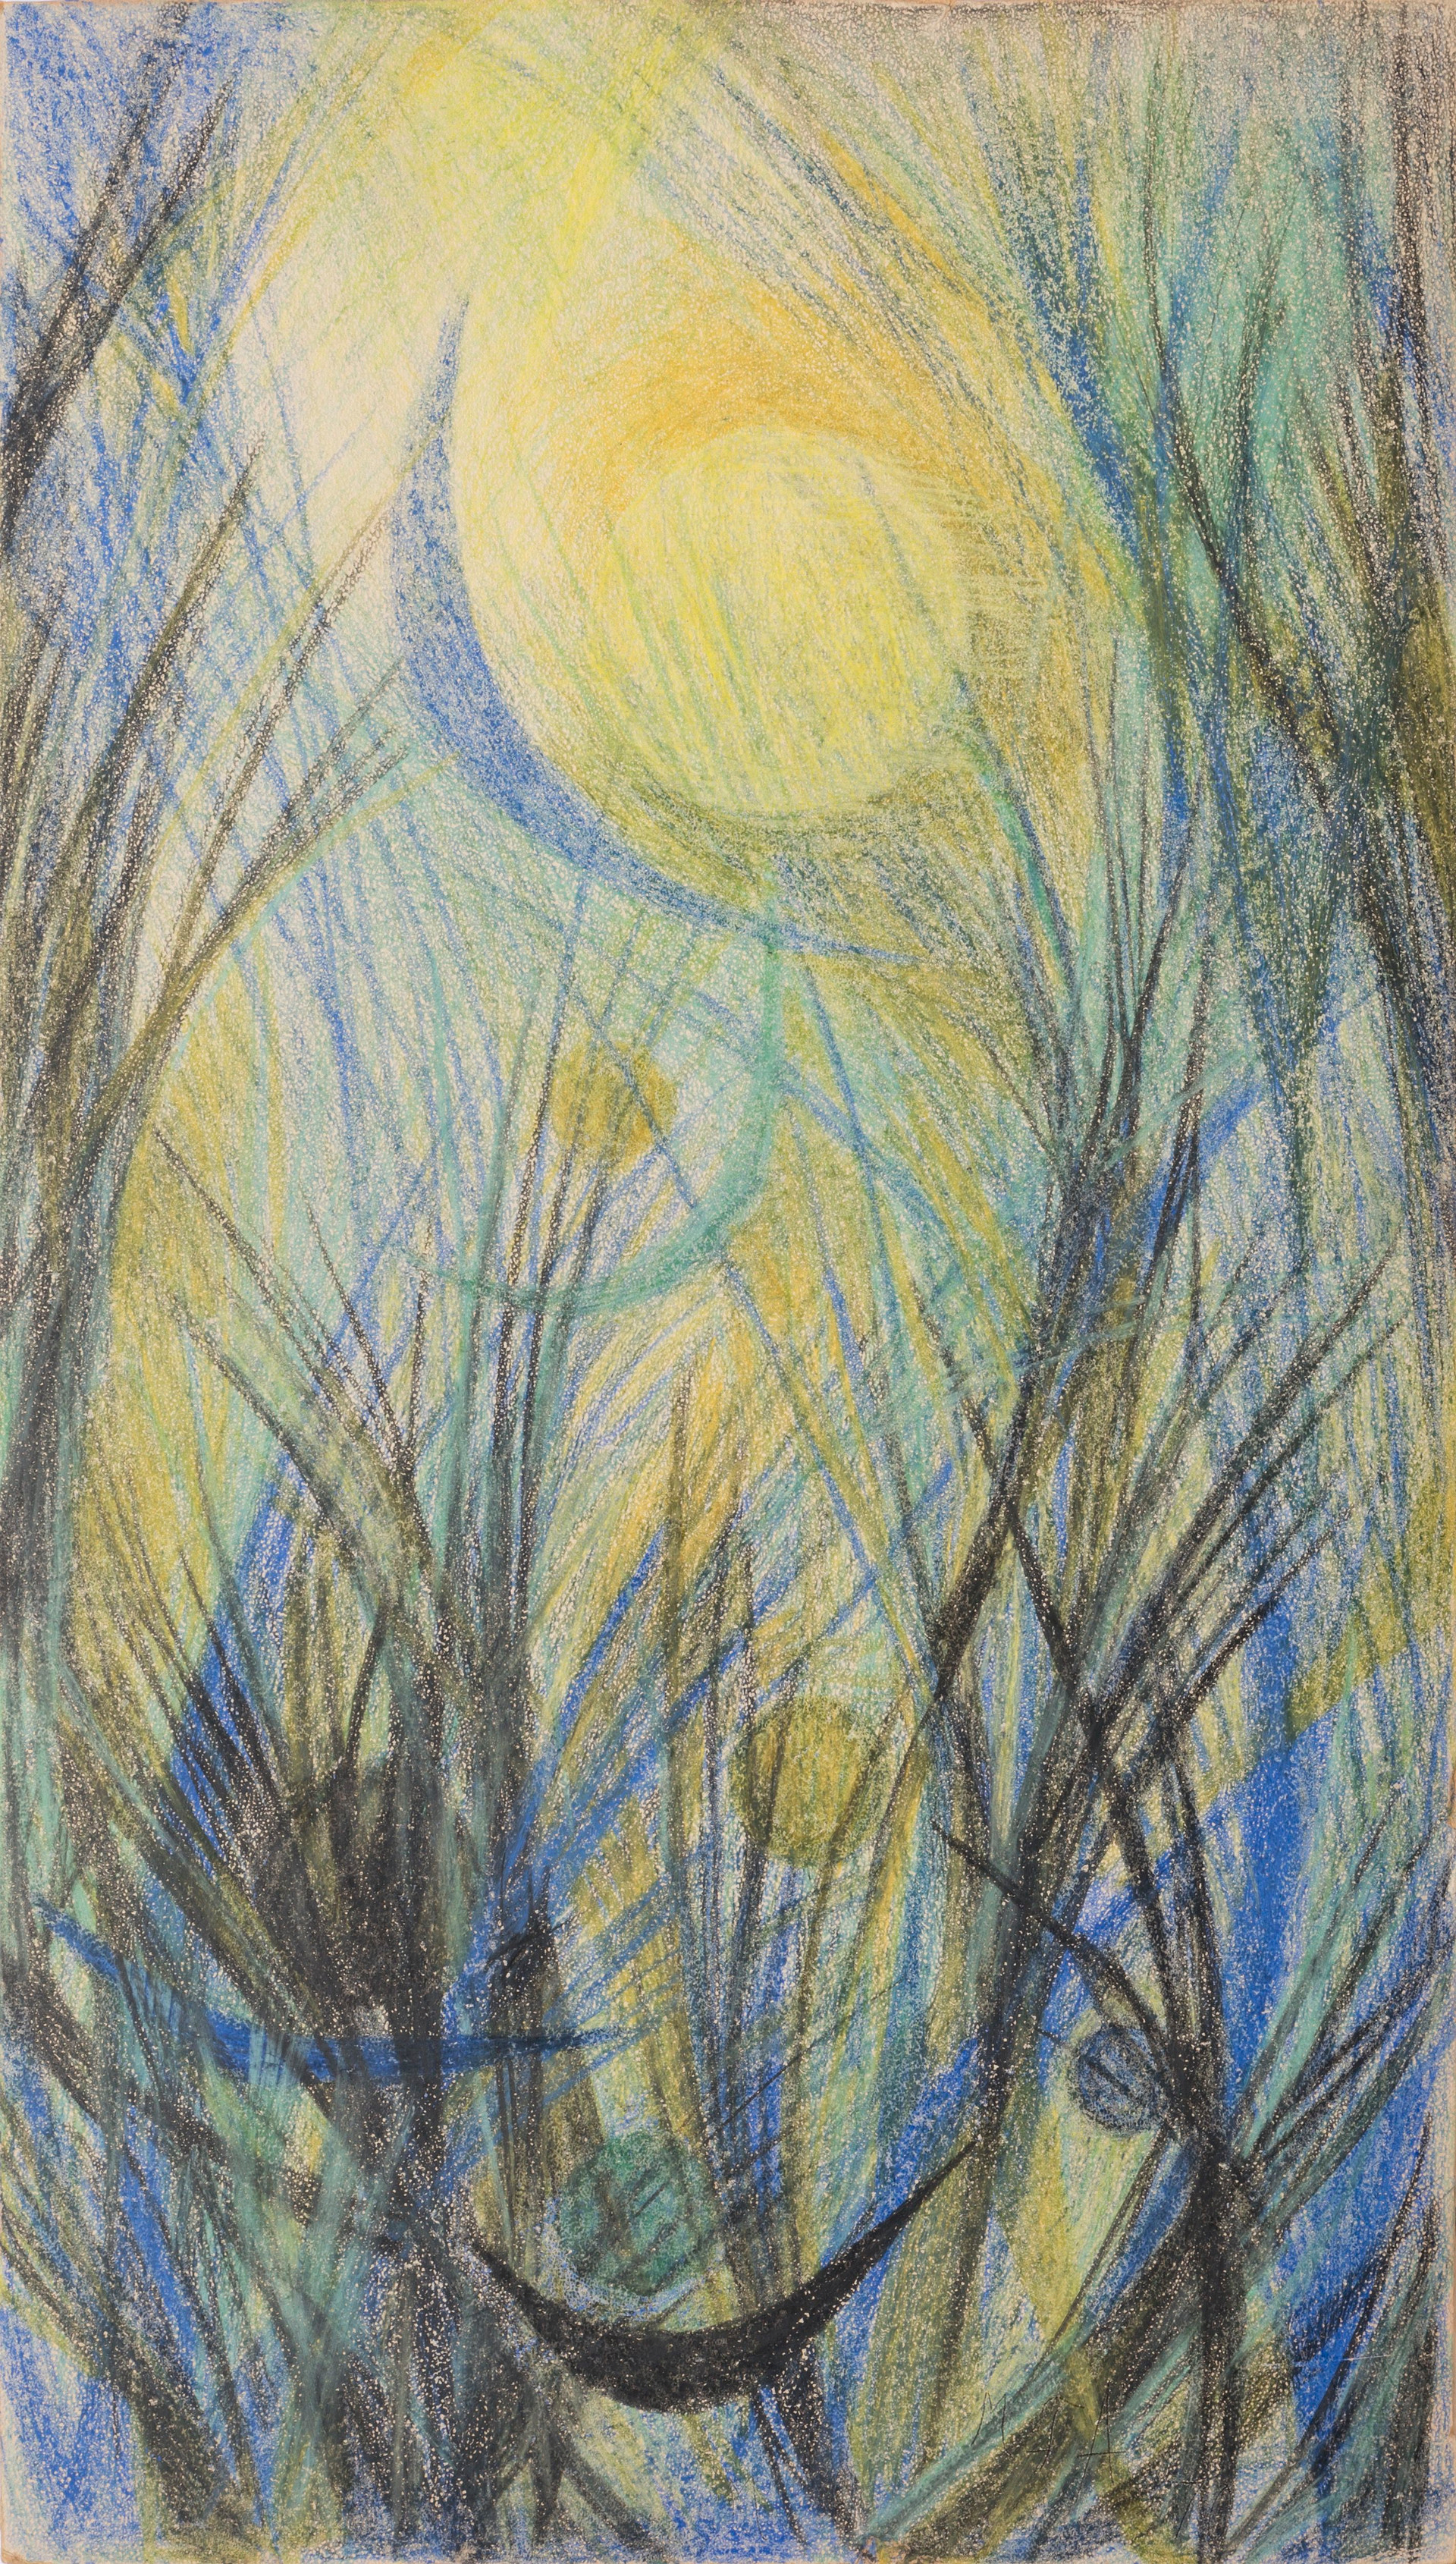 Untitled - full and crescent moons over abstract woods